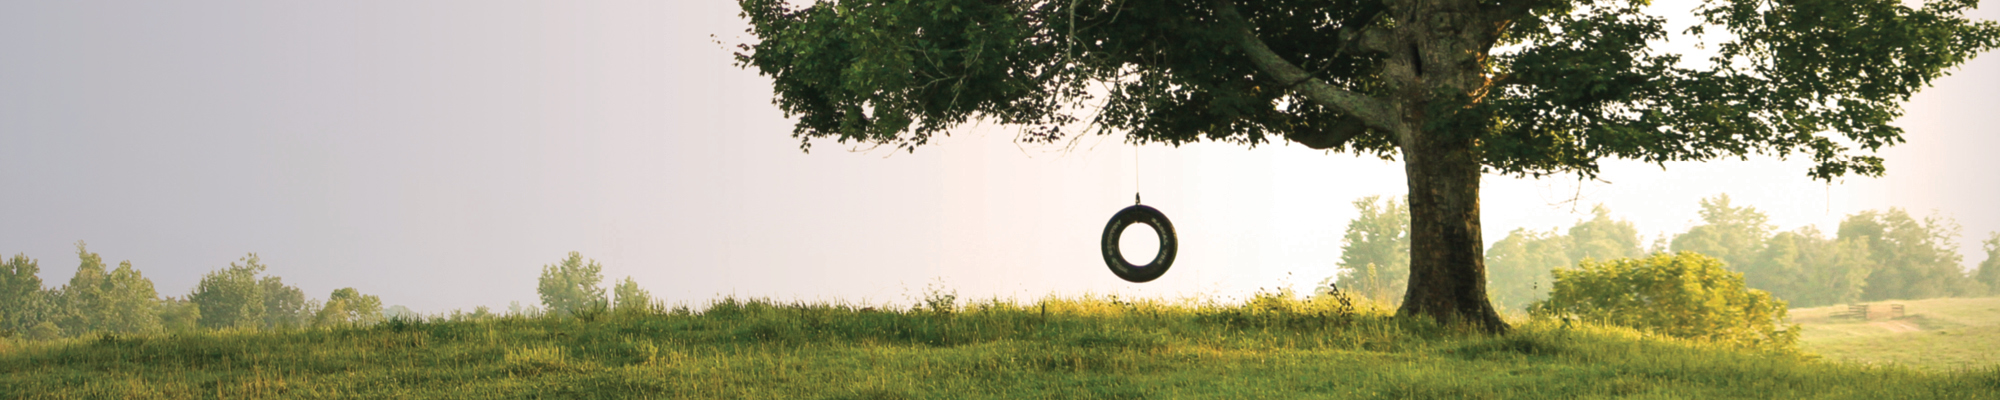 Empty tire swing in a large tree in a field